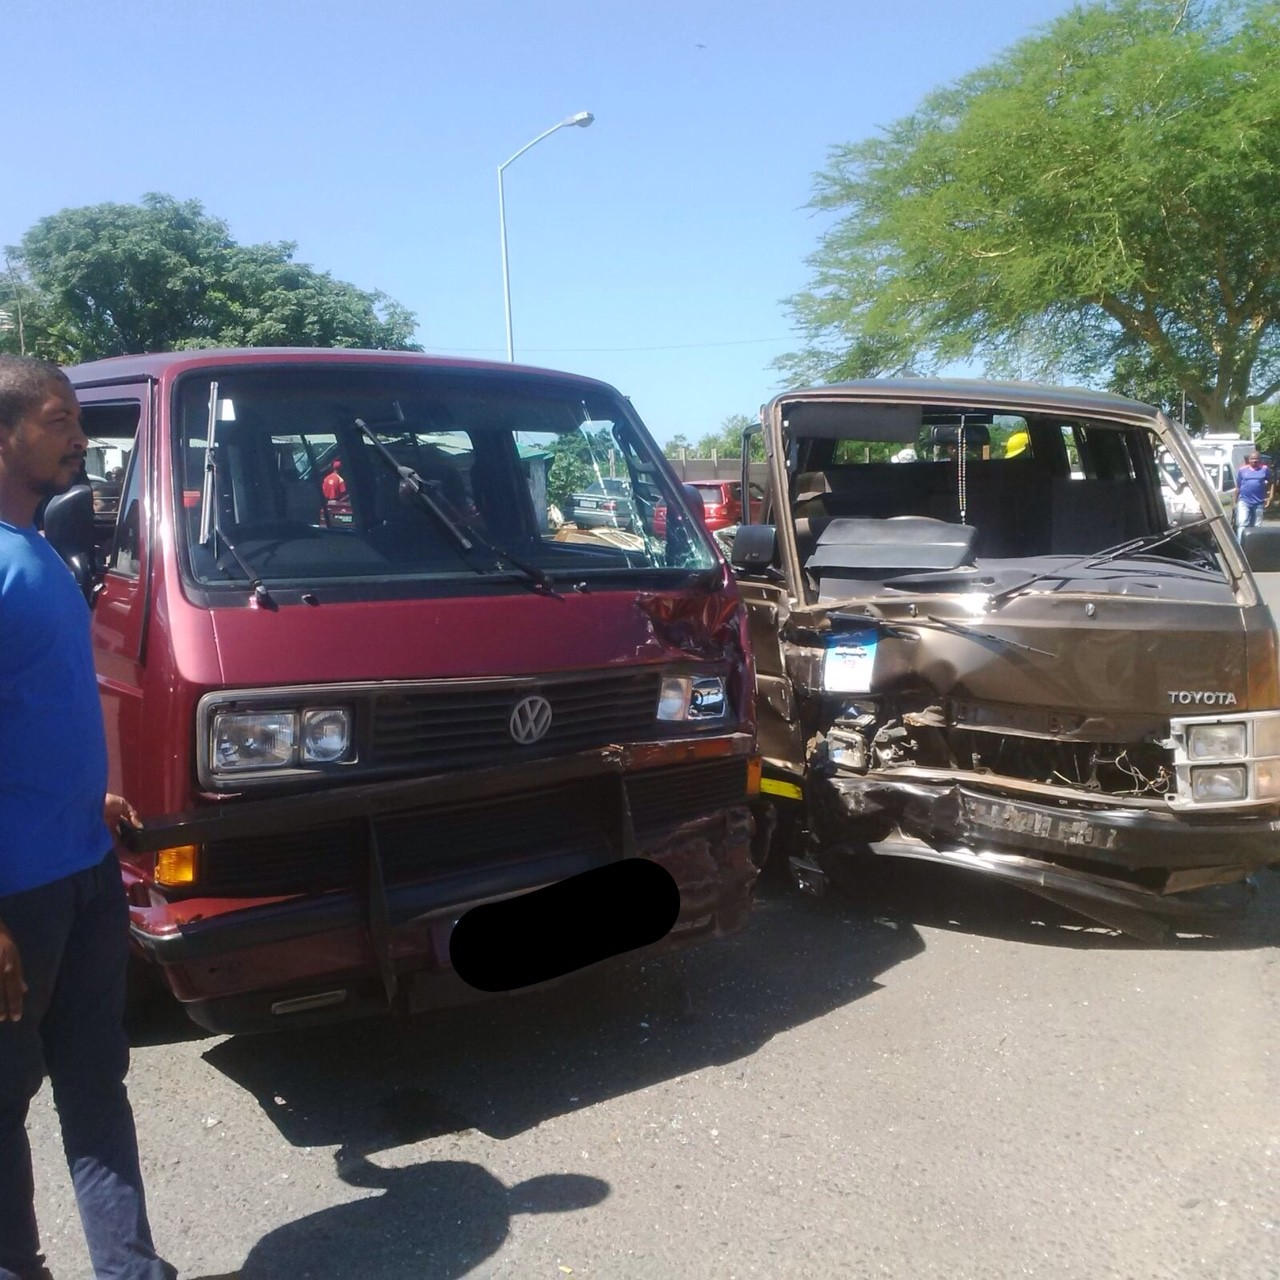 Three children injured as two taxis collide, Briardene